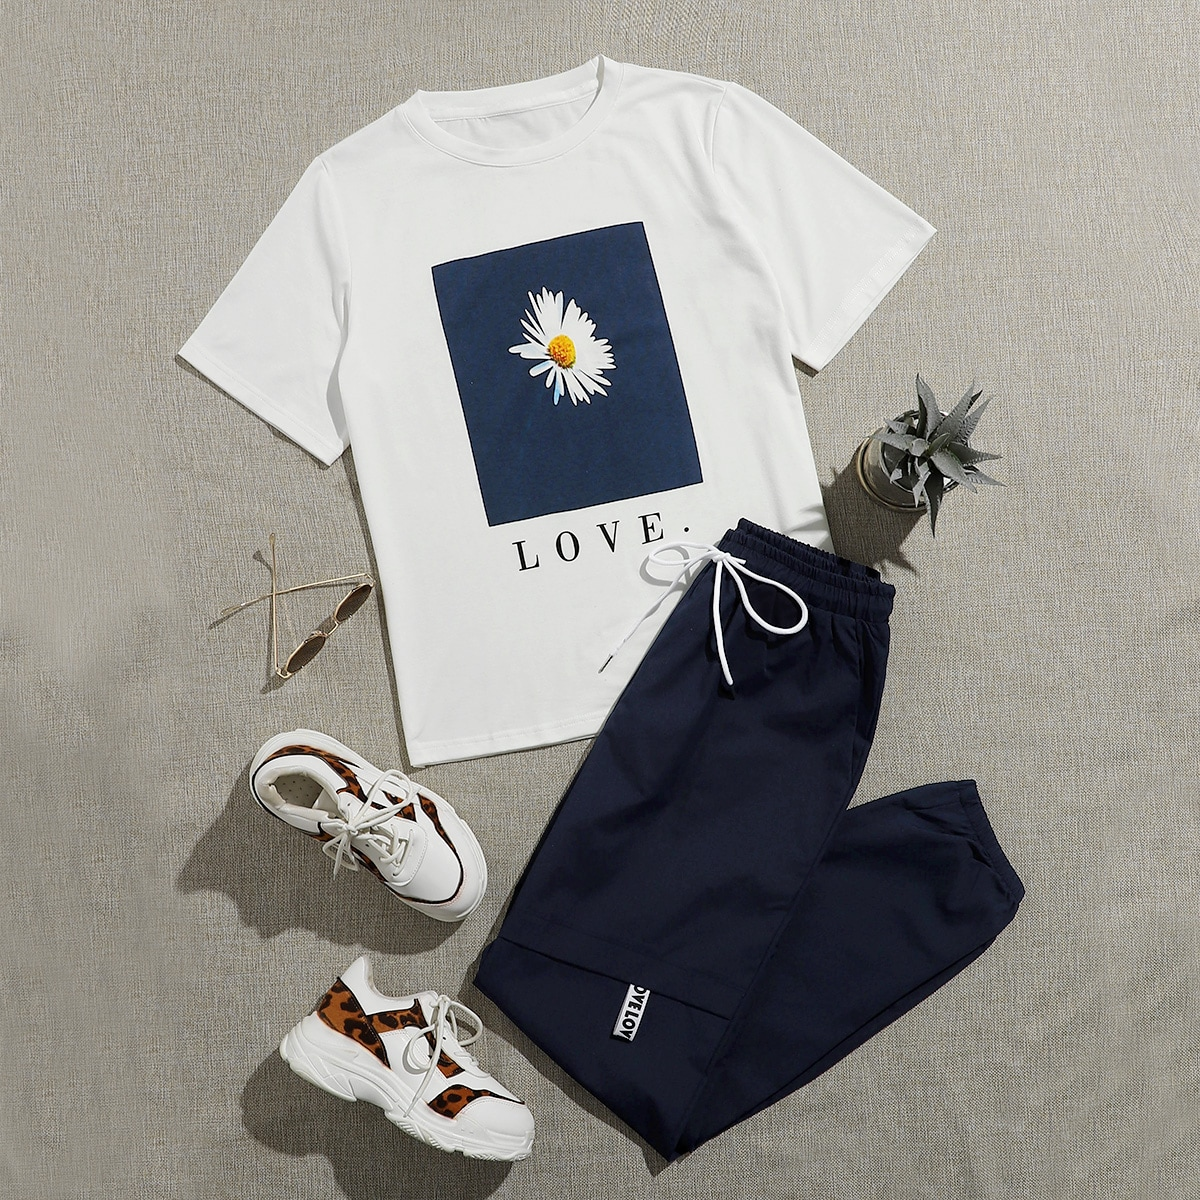 Daisy Print Tee With Drawstring Windbreaker Sweatpants